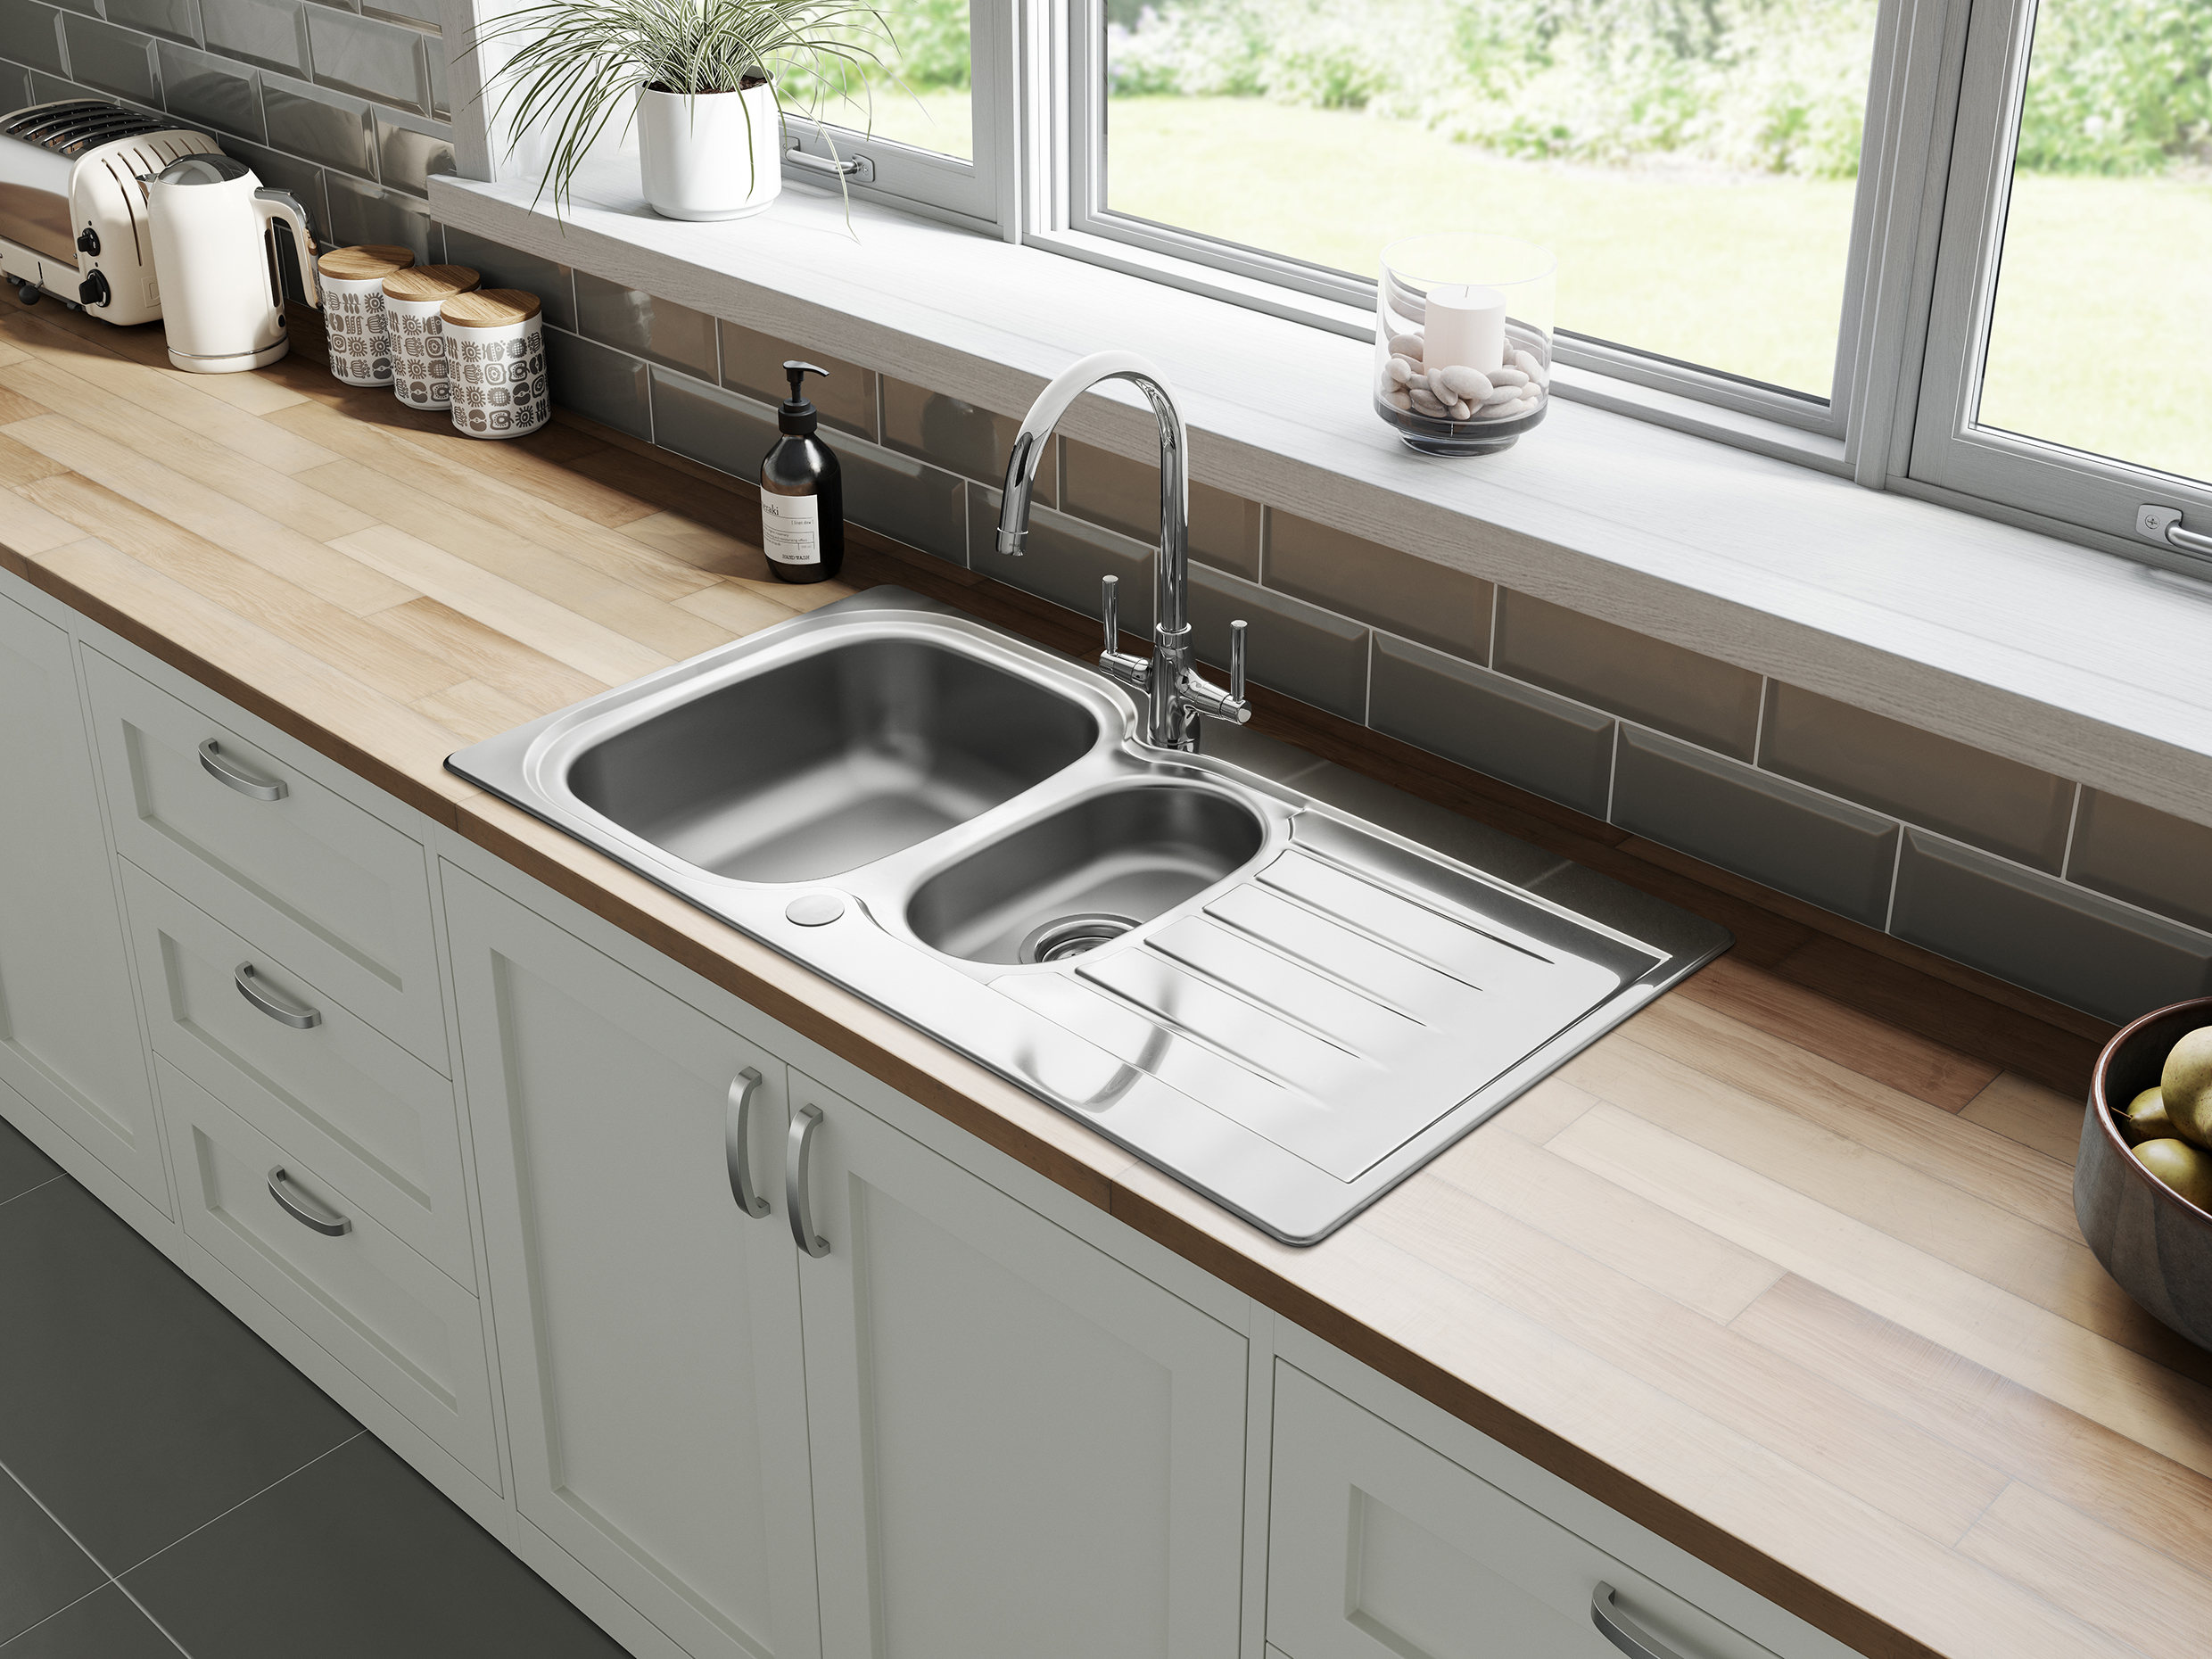 Leisure sinks introduces new eaton stainless steel collection